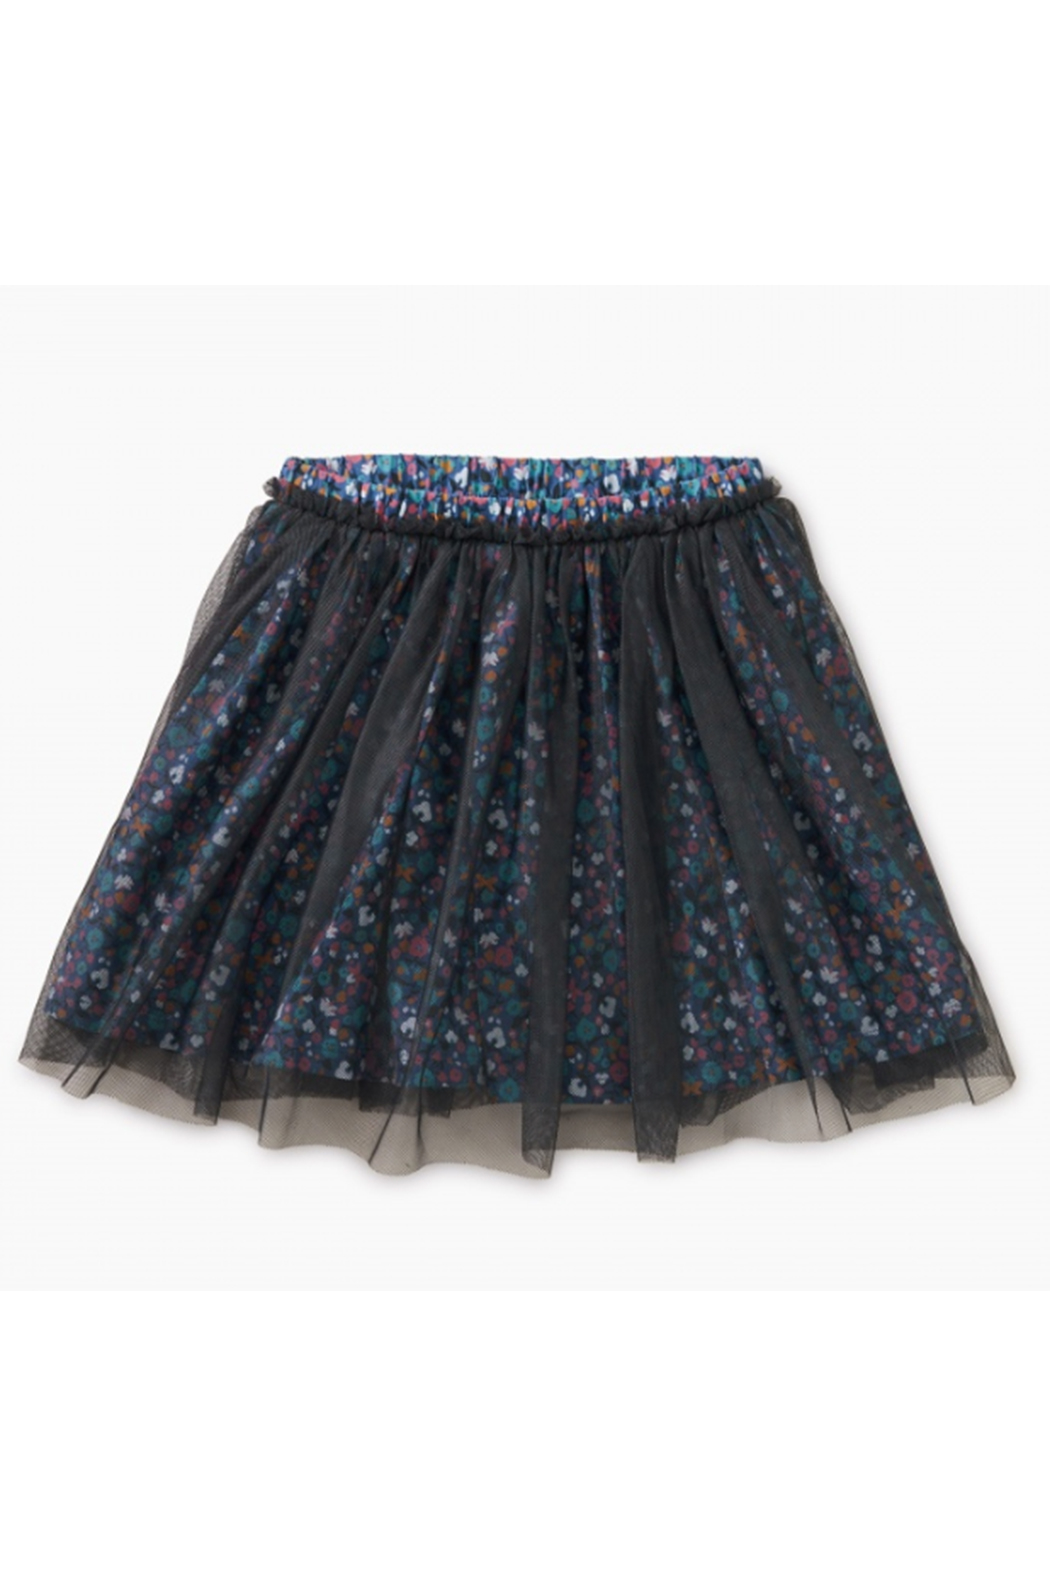 Tea Collection Patterned Tulle Twirl Skirt - Main Image